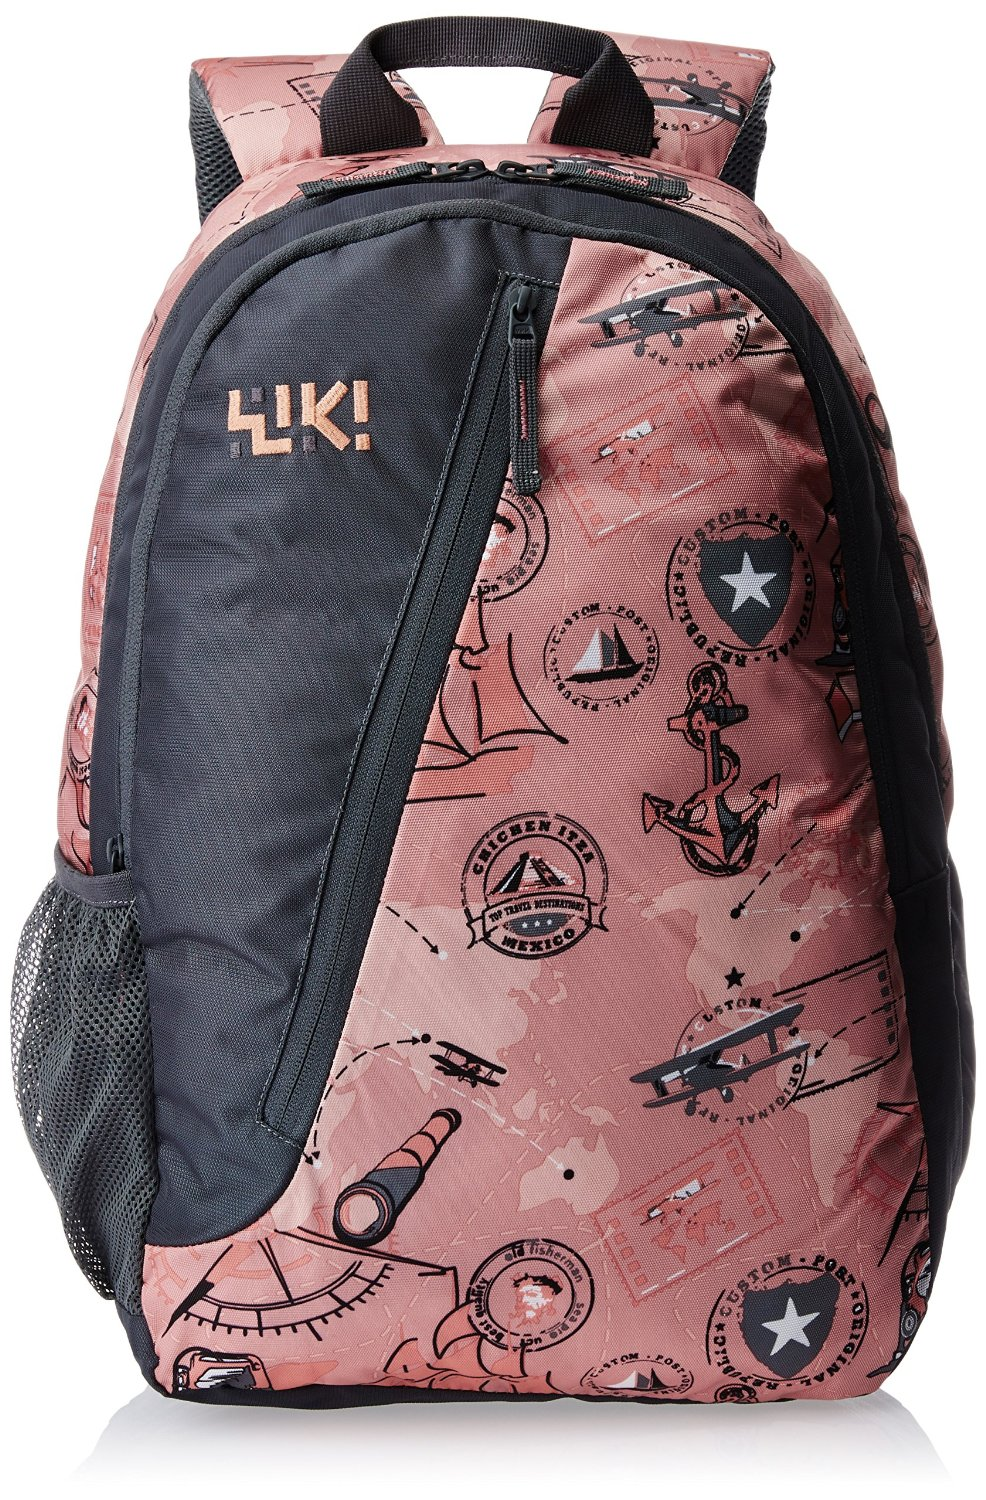 Backpack Cheapest Online Price